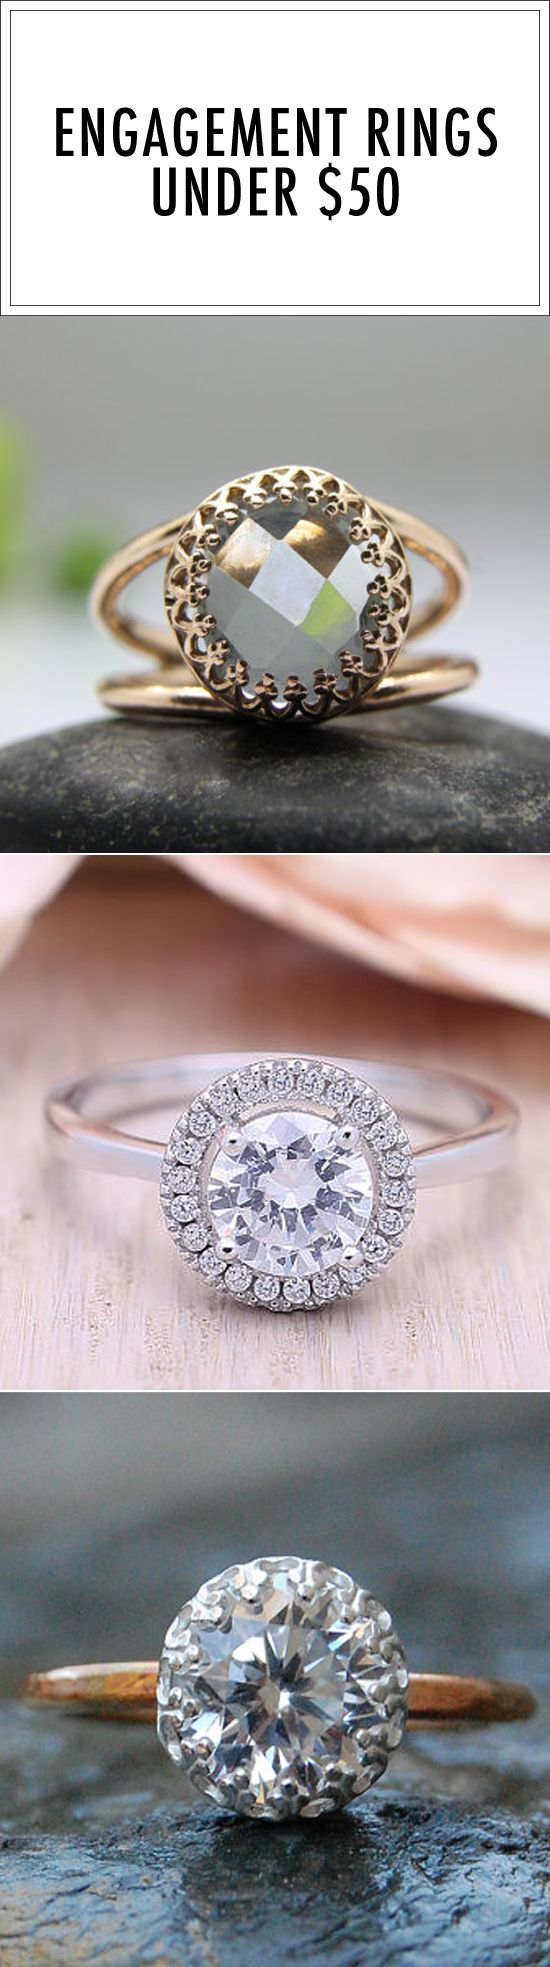 26 Stunning Engagement Rings That Cost Under 50 Cheap Wedding Rings Engagement Inexpensive Wedding Rings Budget Engagement Rings